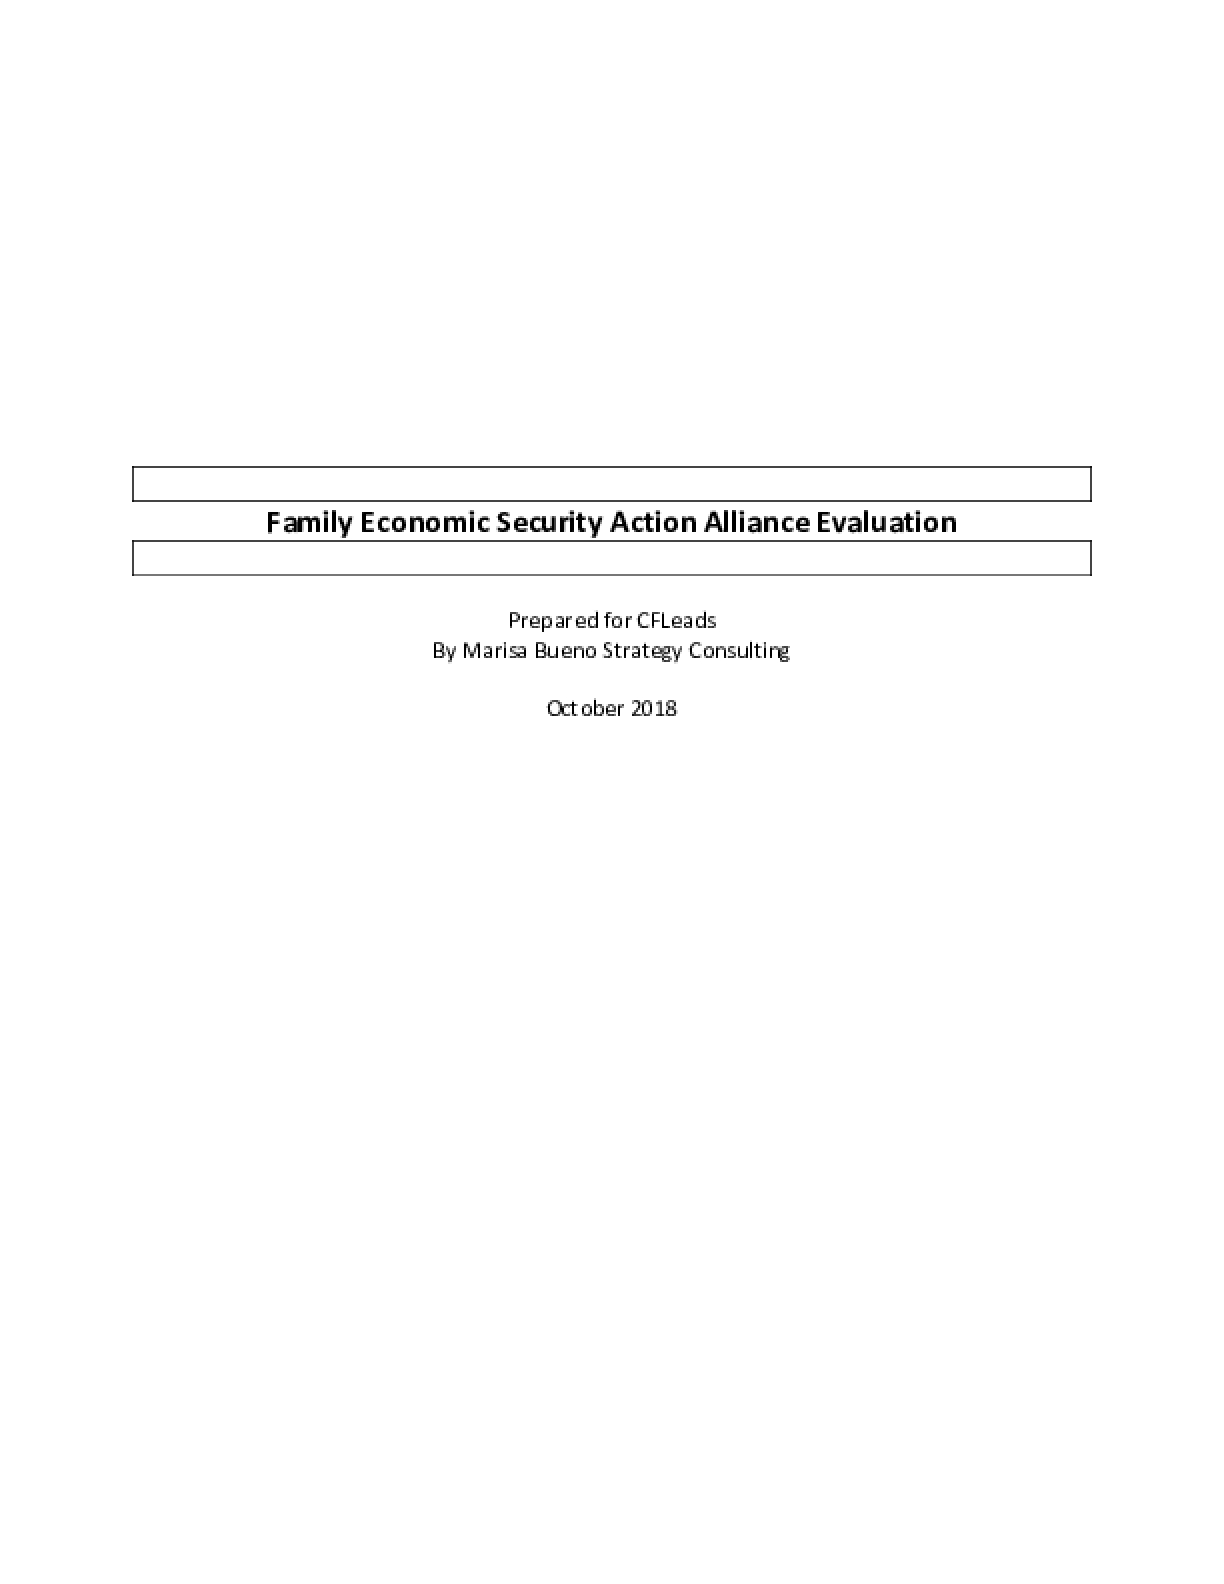 Family Economic Security Action Alliance Evaluation